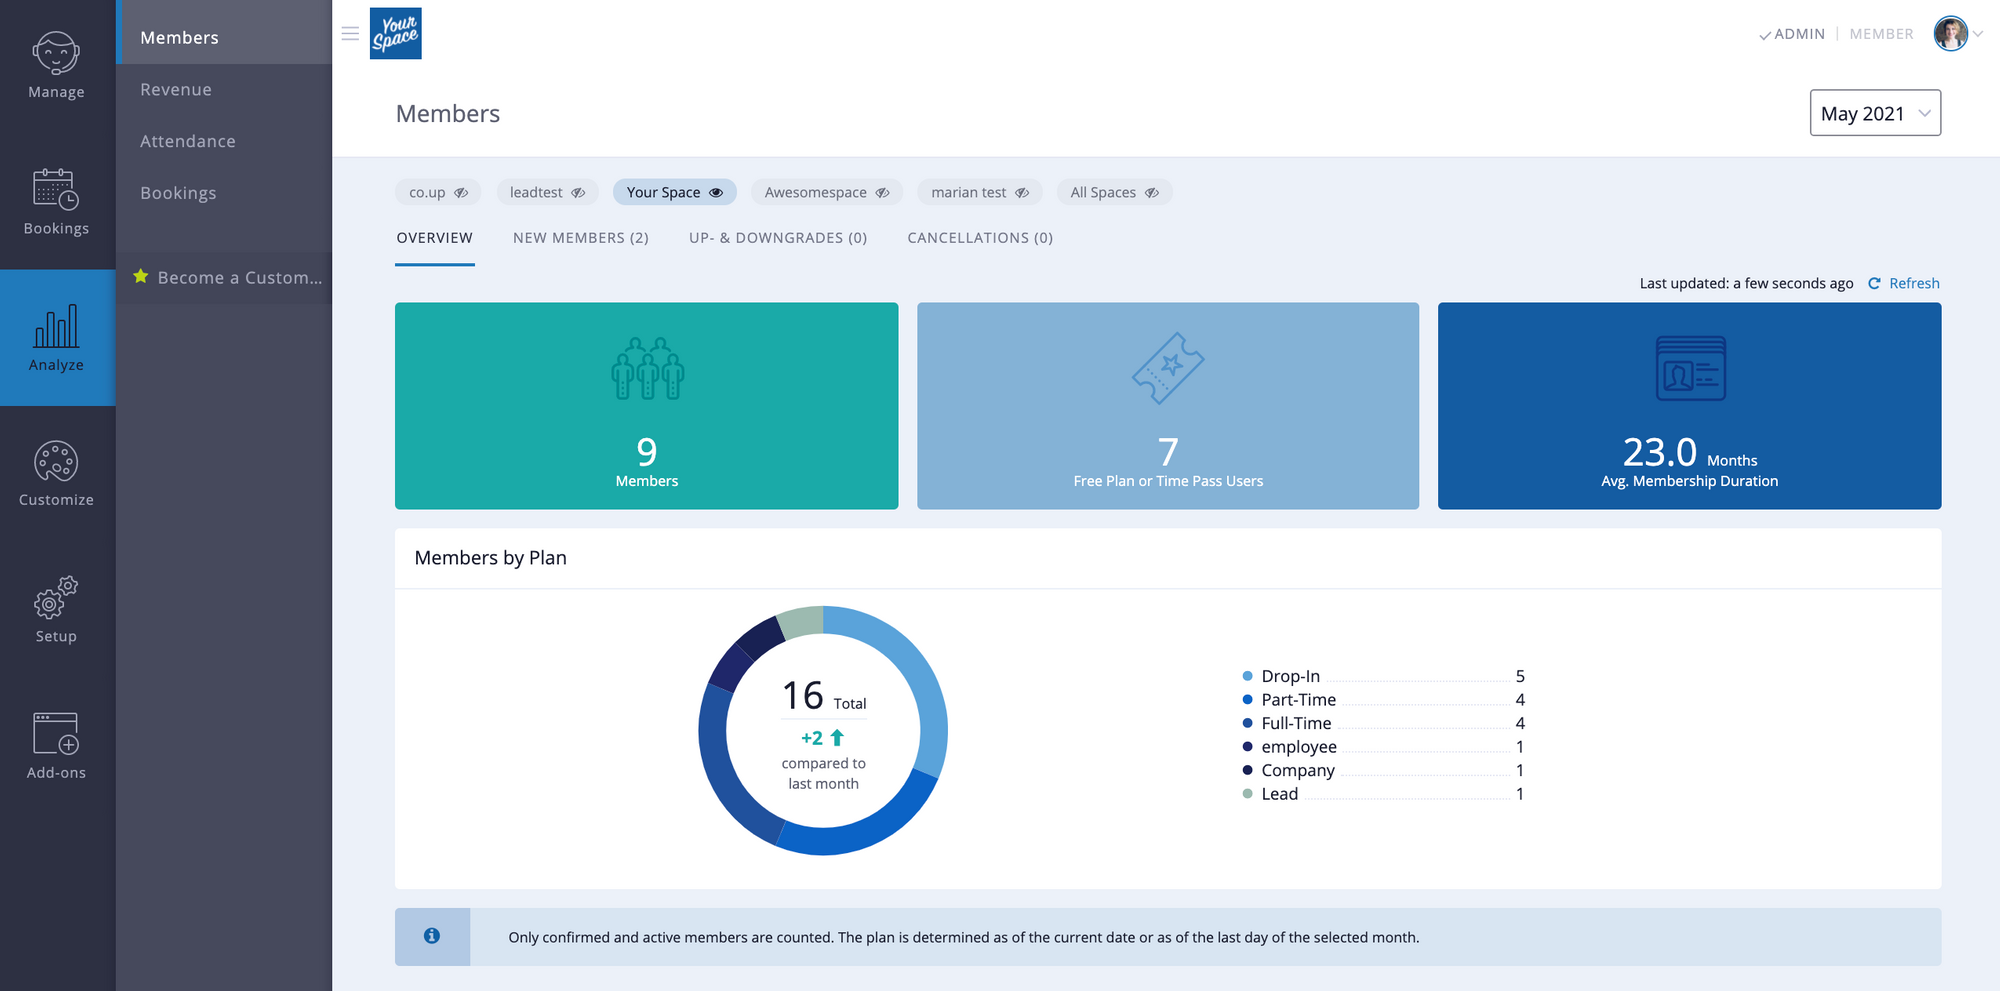 """A view of the """"Analyze"""" section of the Cobot dashboard, showing member insights."""